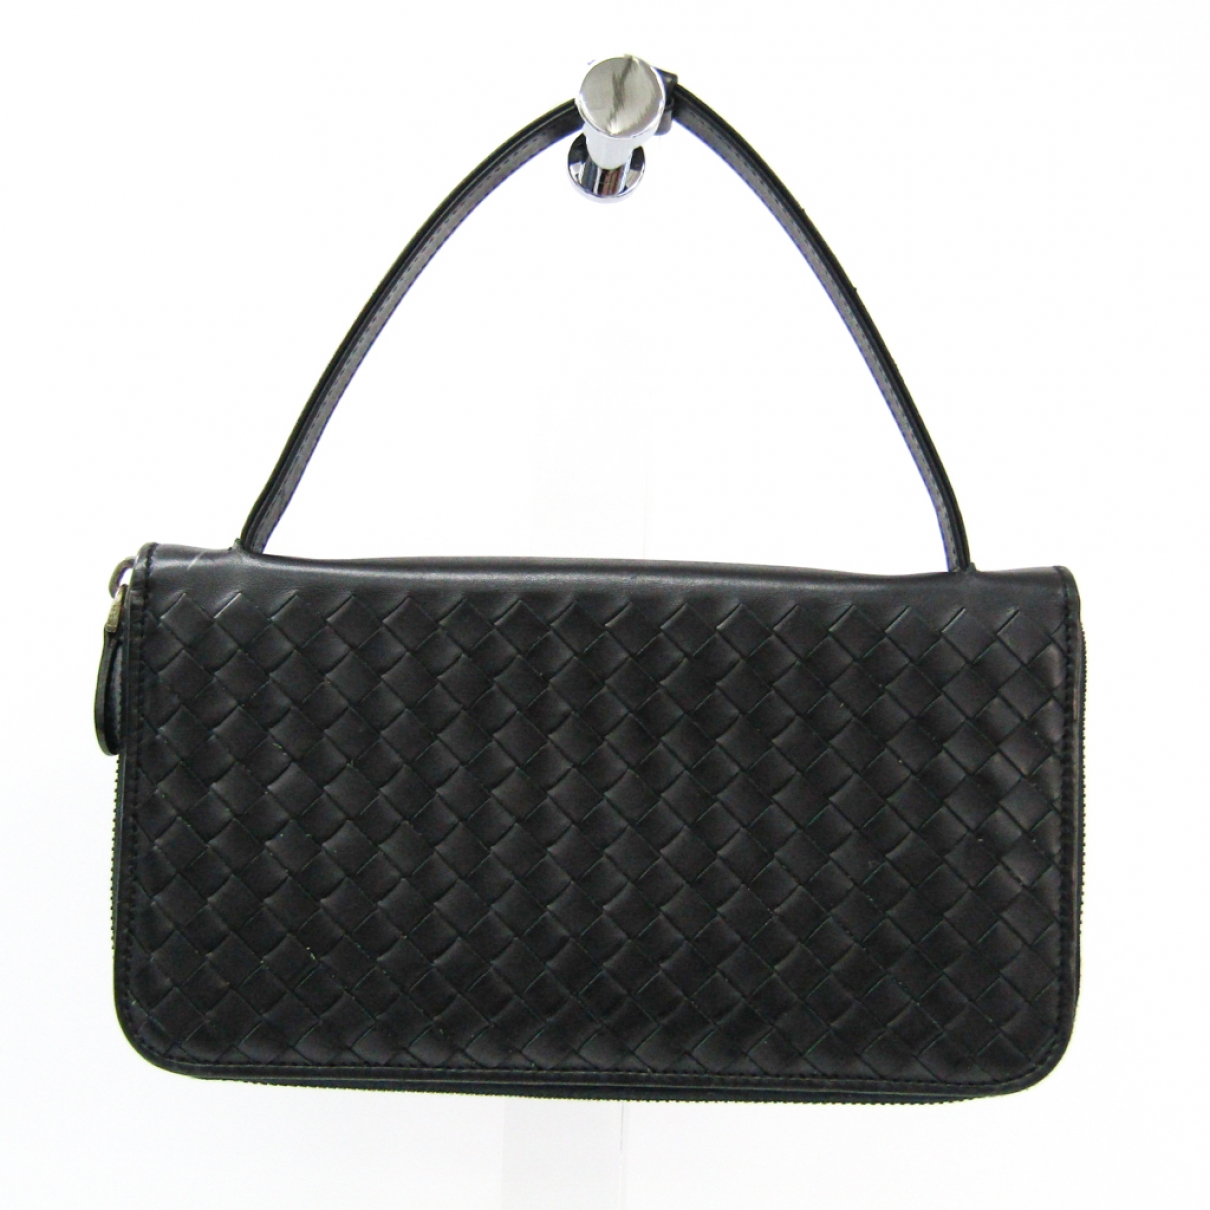 Bottega Veneta \N Black Leather wallet for Women \N